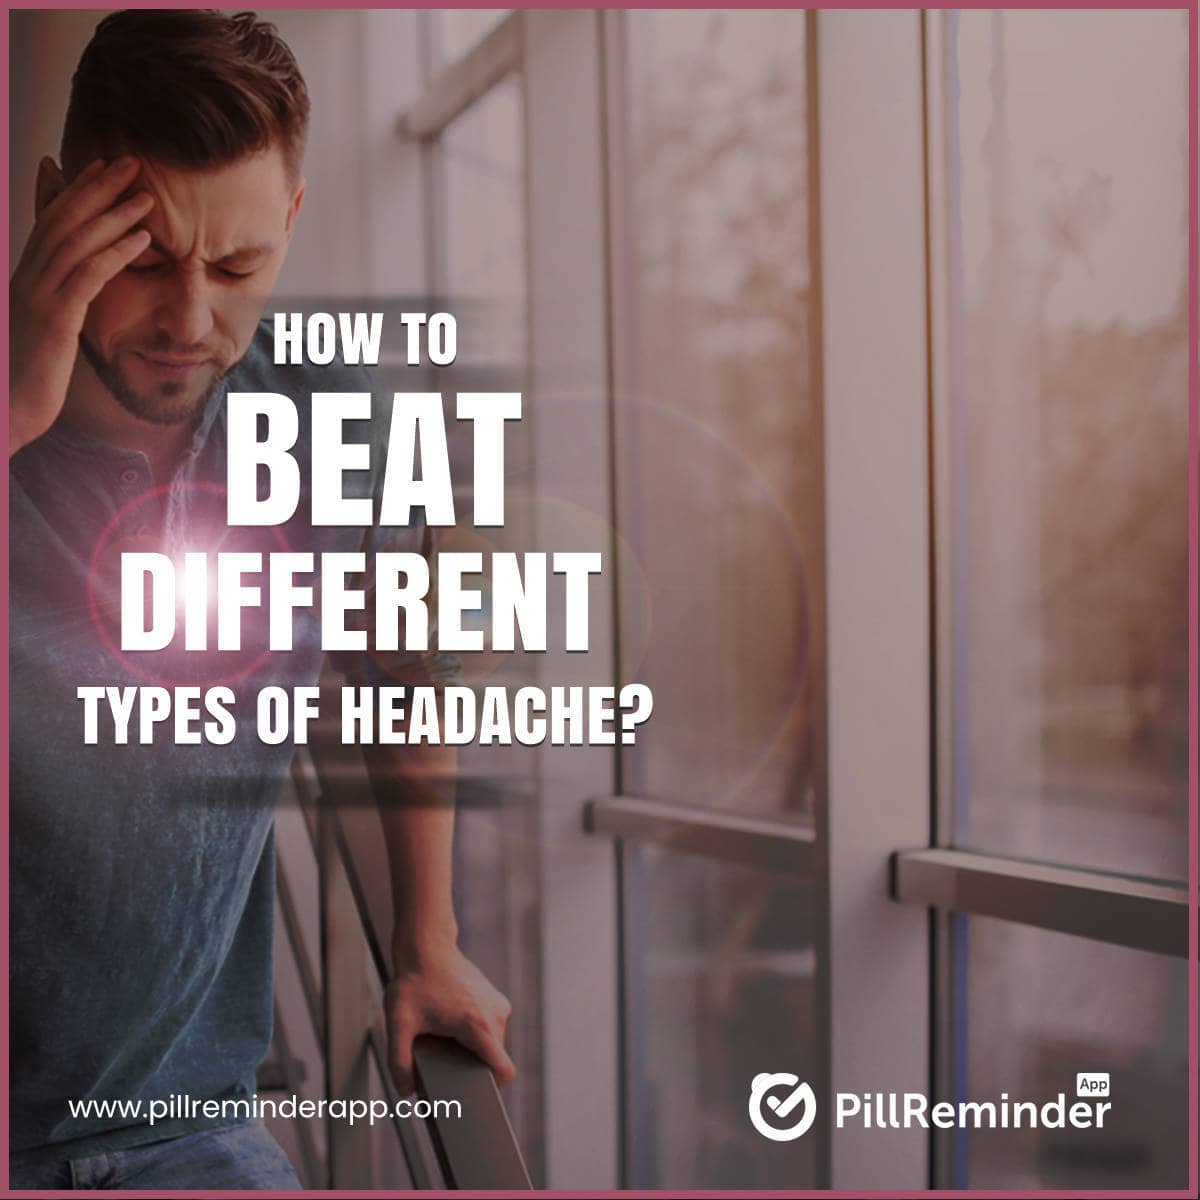 How To Beat Different Types Of Headache?